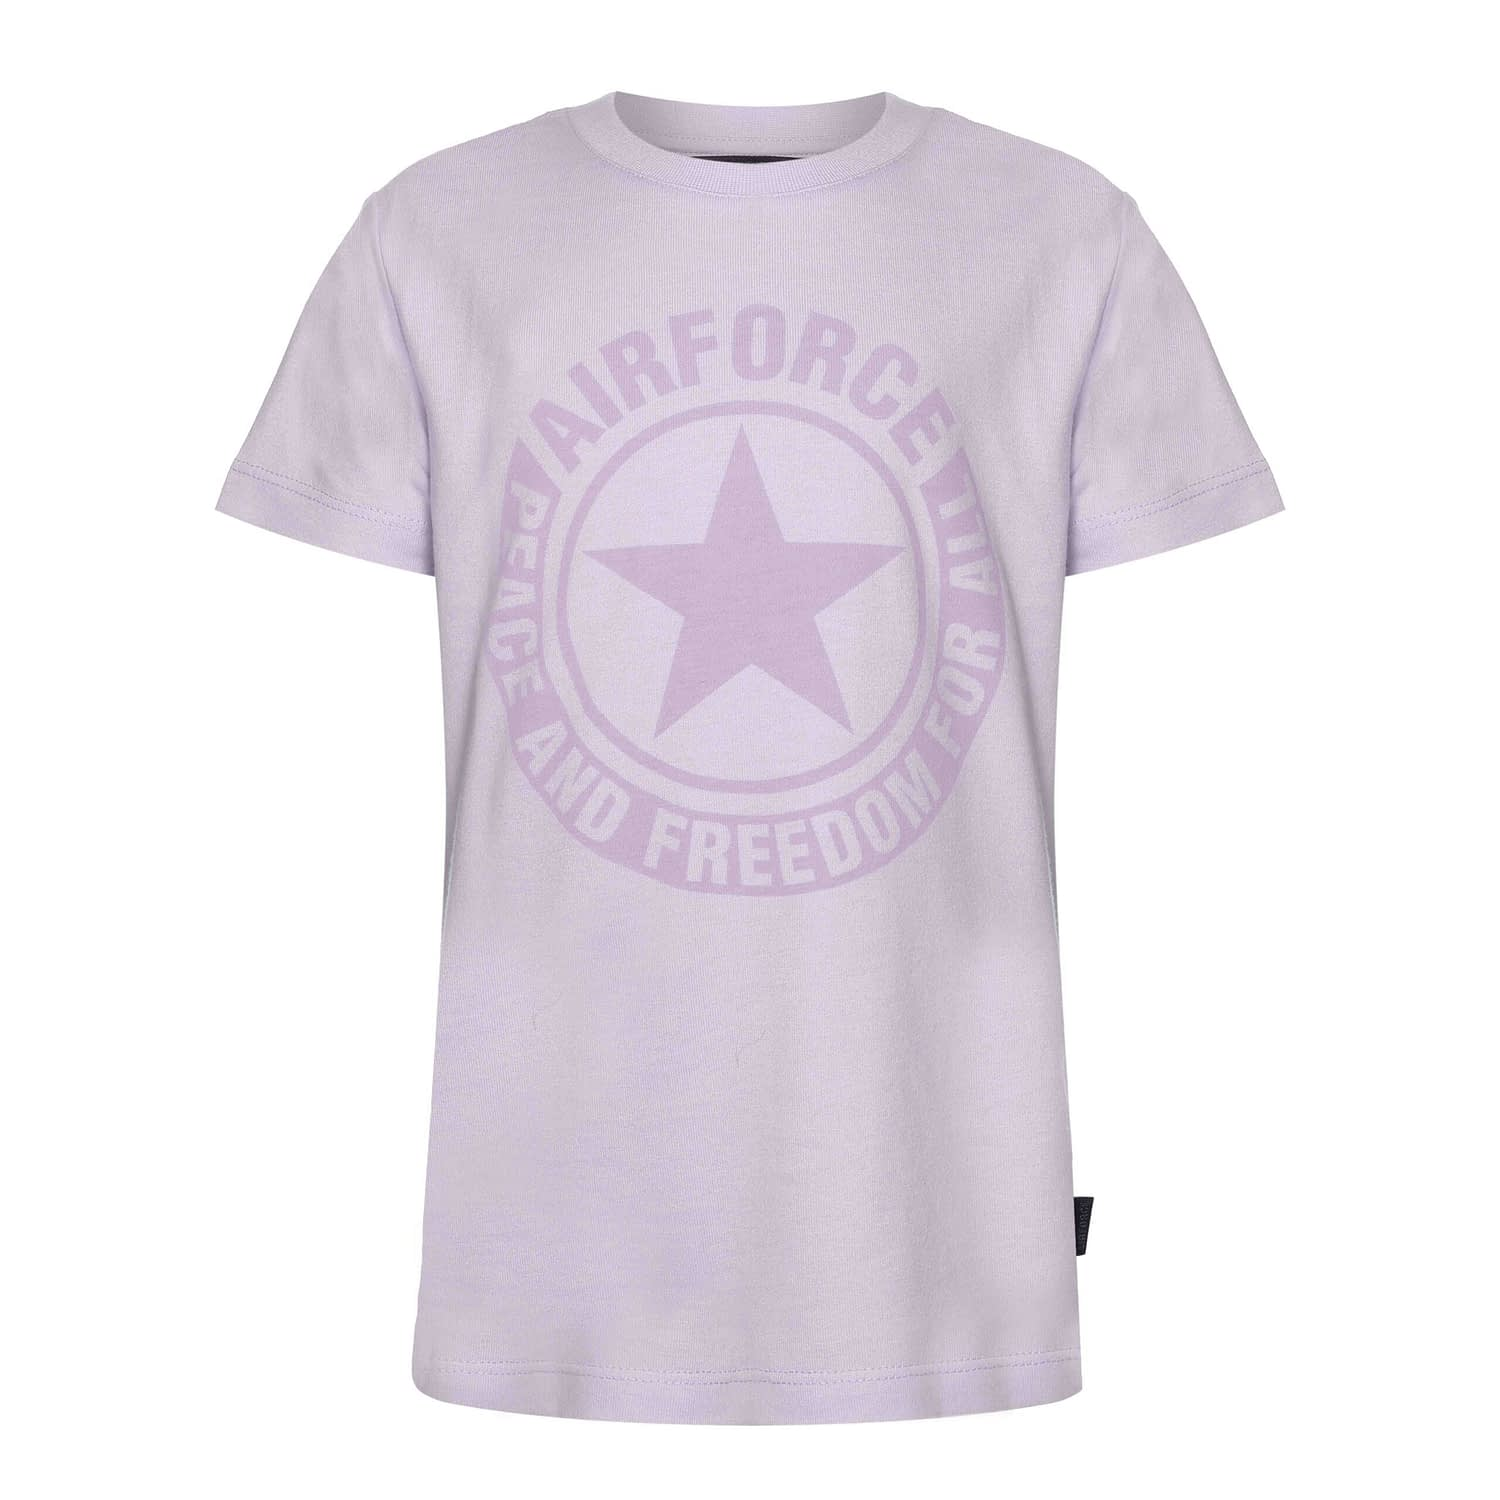 Airforce Logo T-Shirt Lavender TBB0730-y022 front main